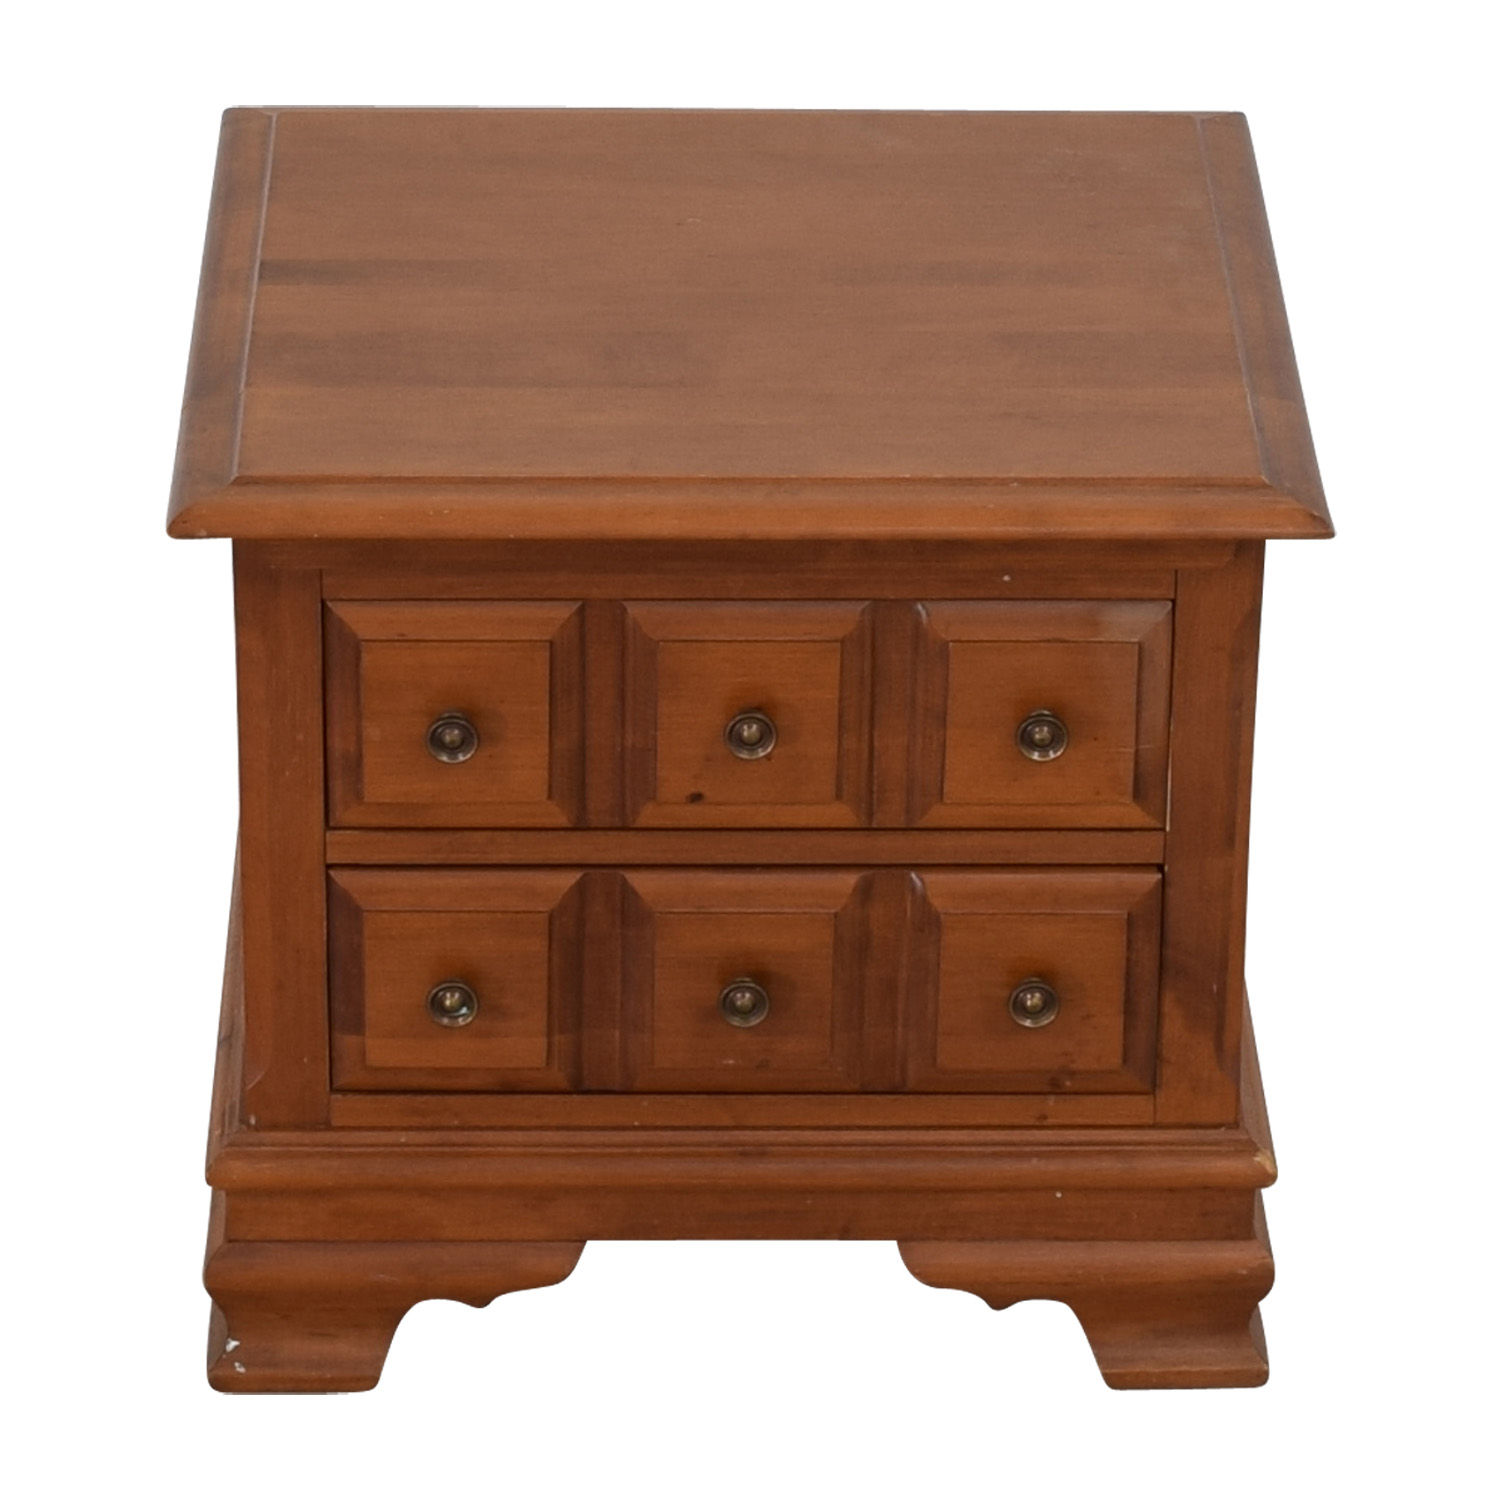 Vilas Vilas Two-Drawer Solid Oak Nightstand used